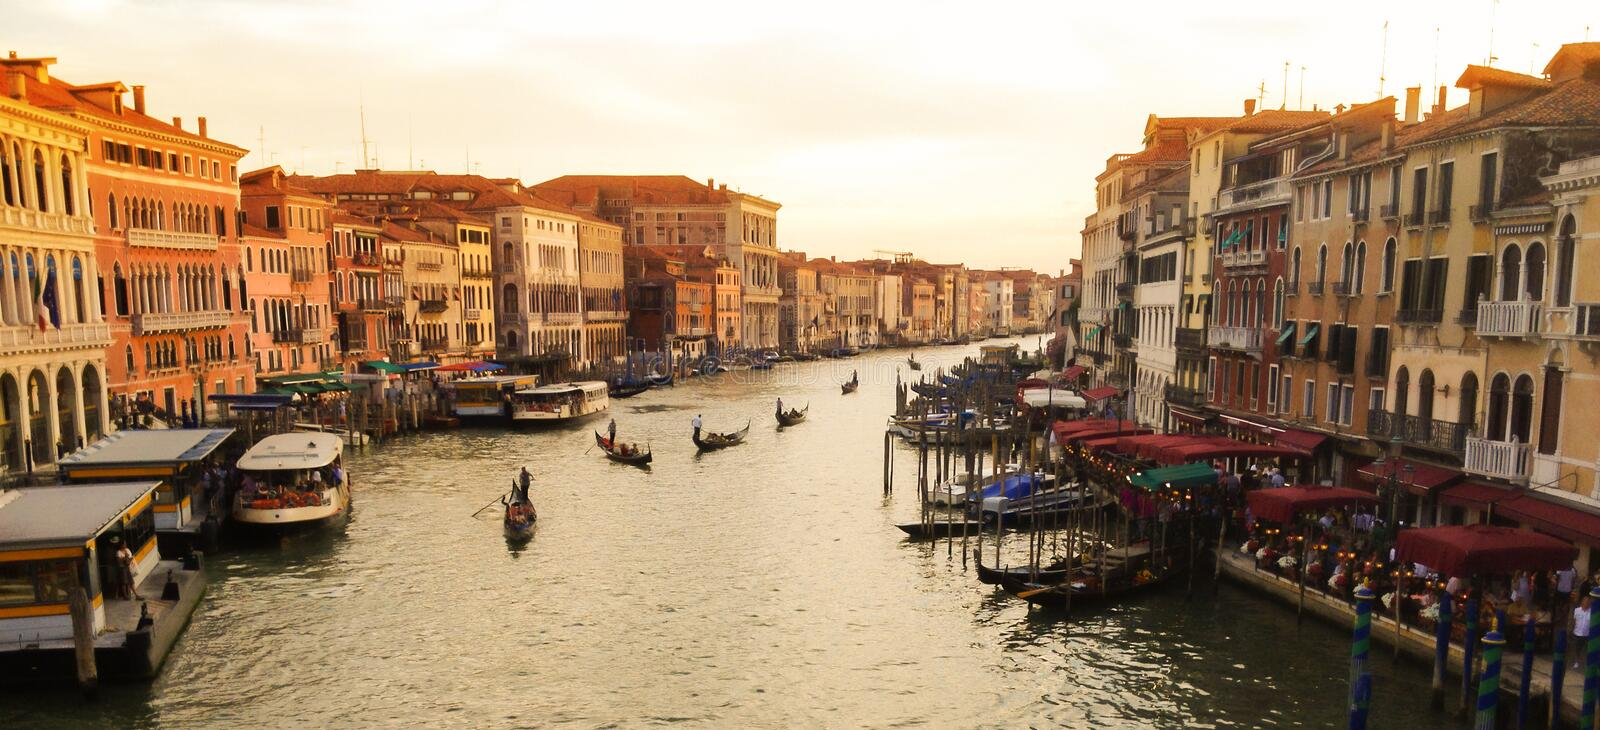 Gondolas with gondoliers and passengers lineup in Grand Canal view from Ponte Rialto Rialto Bridge, Venice at sunset, Italy. royalty free stock photos